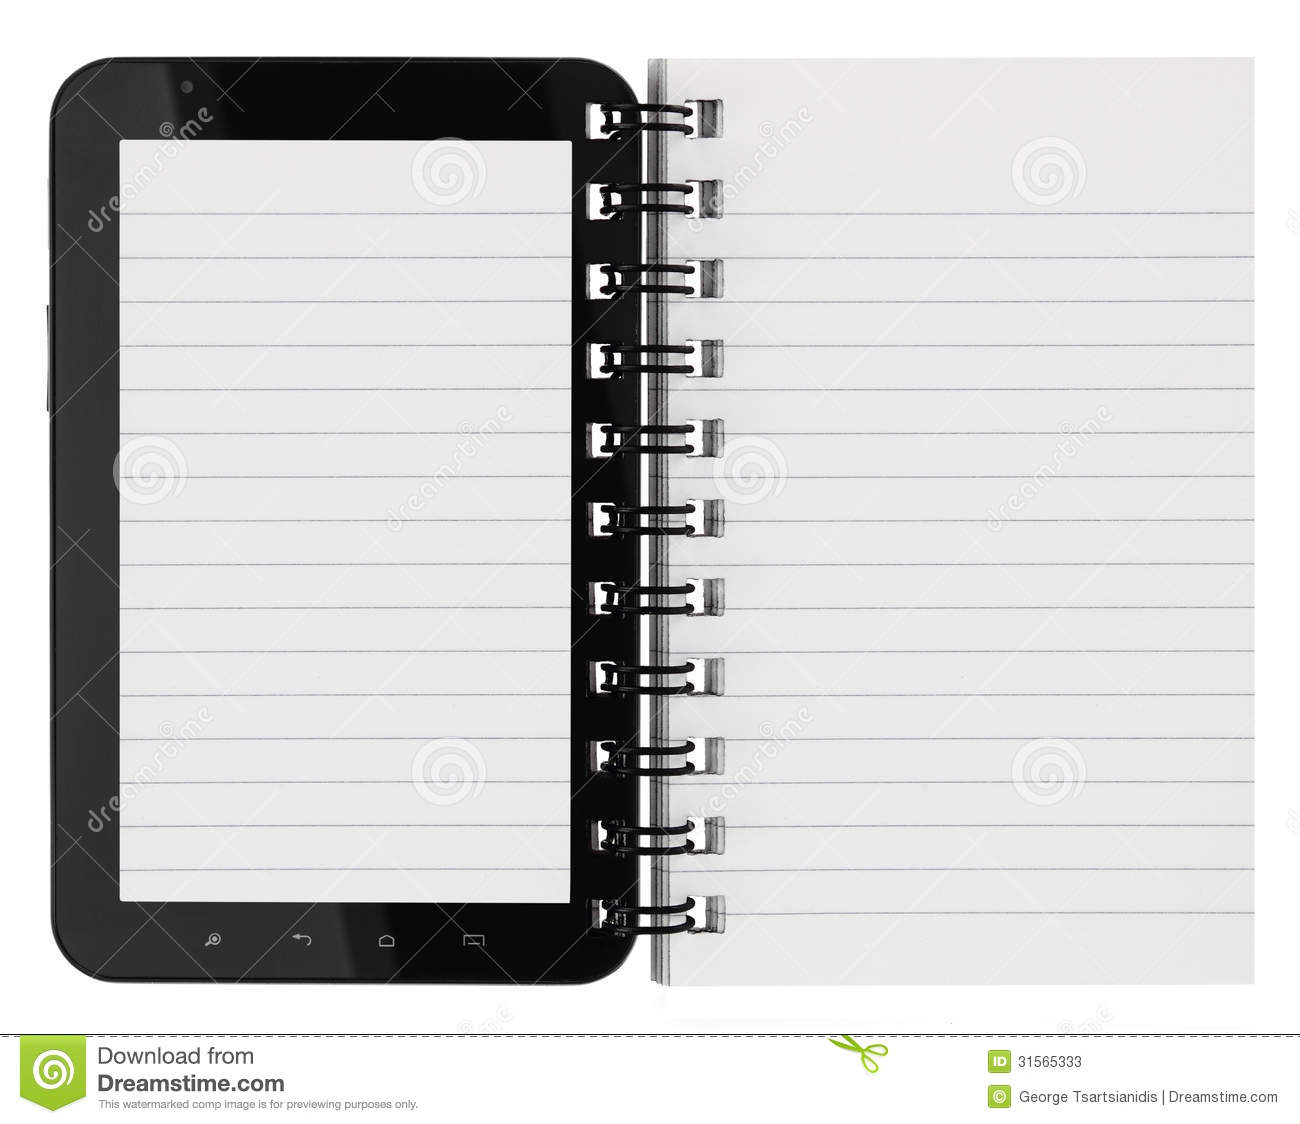 Tablet Computer With Notebook Pages Stock Photos - Image: 31565333